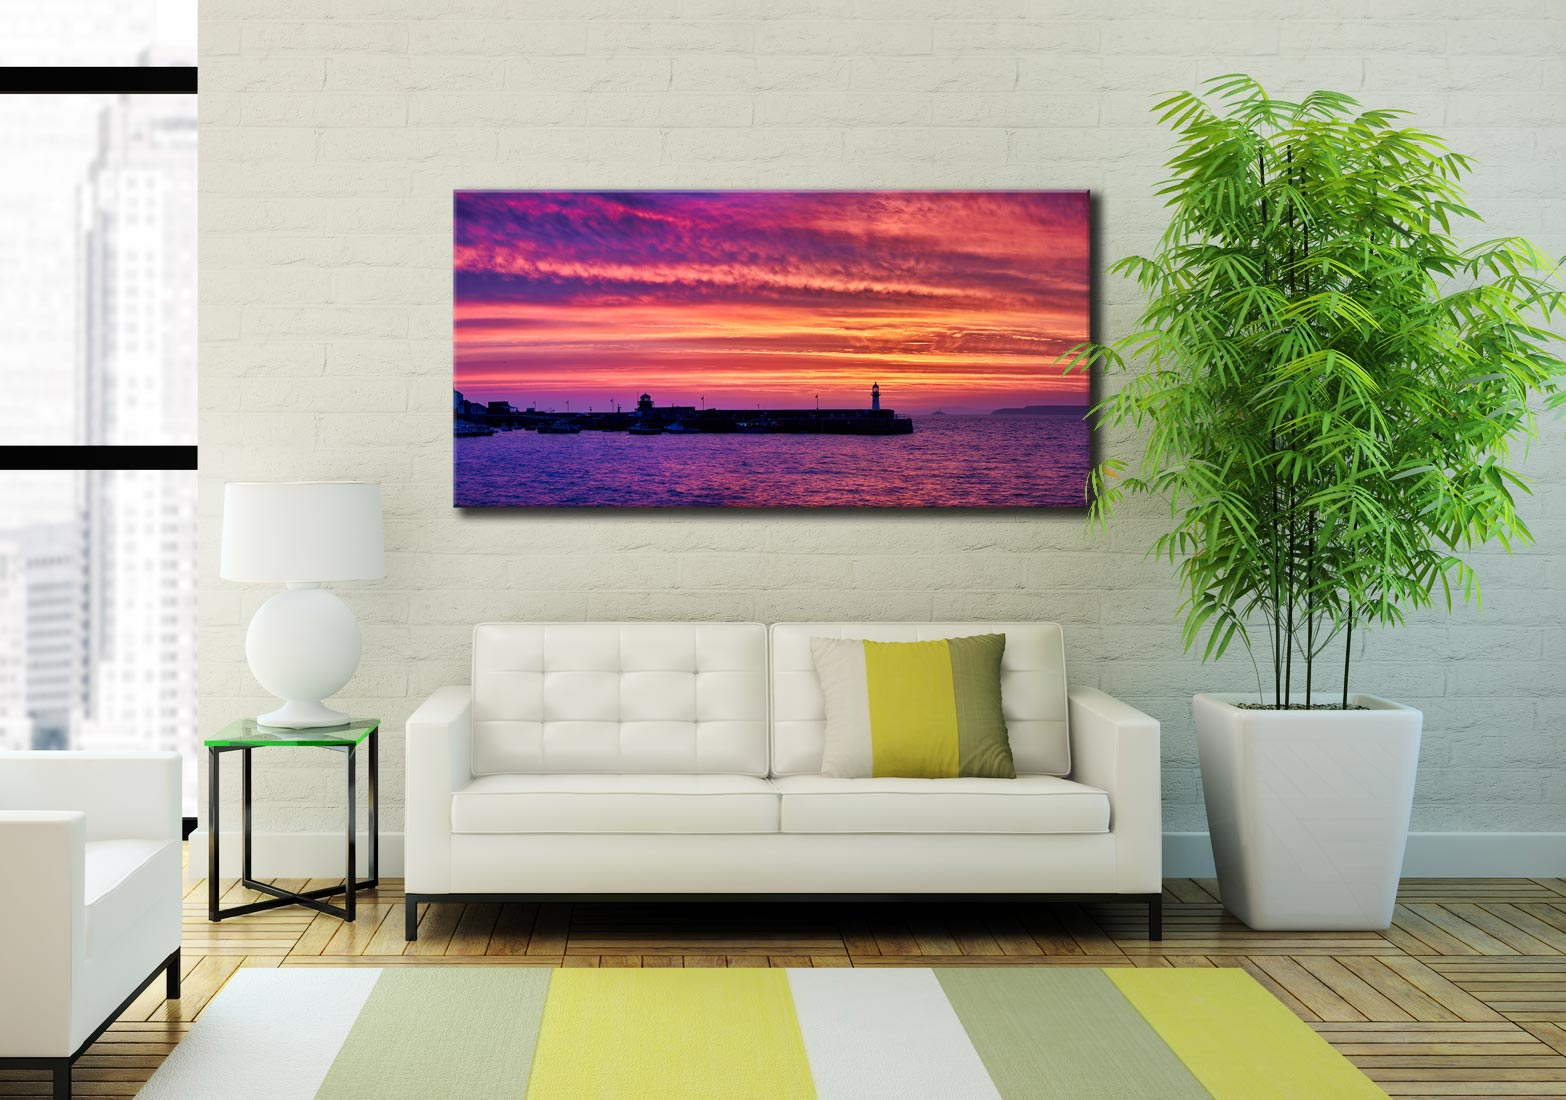 St Ives Purple Skies of Sunrise - Canvas Print on Wall